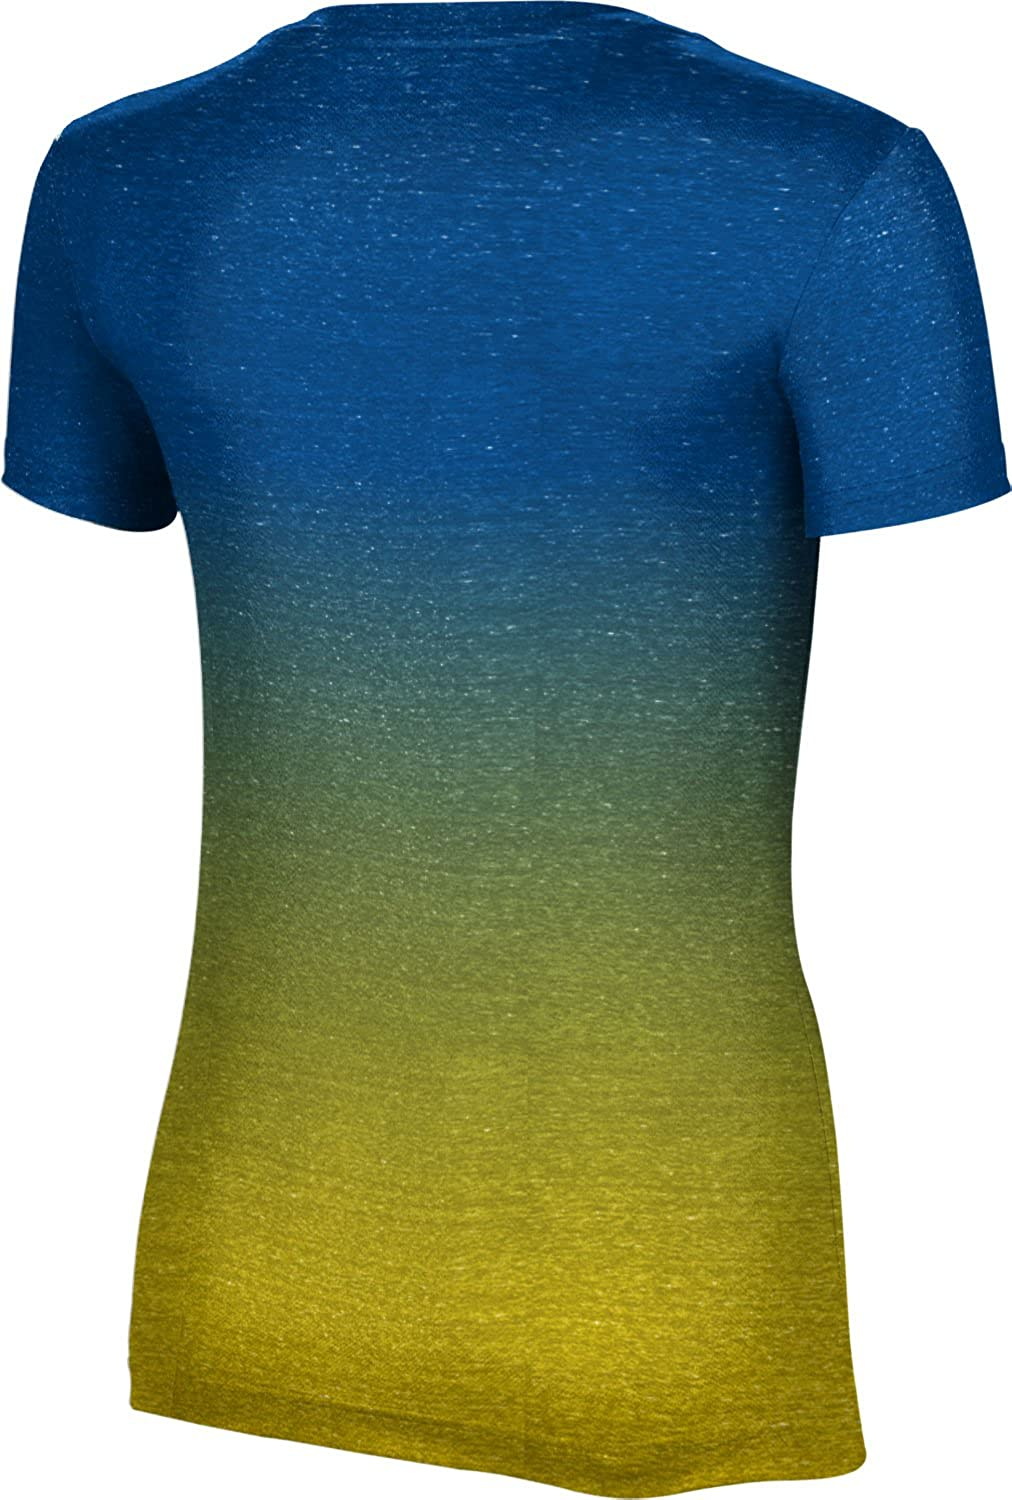 ProSphere California State University Bakersfield Girls Performance T-Shirt Ombre